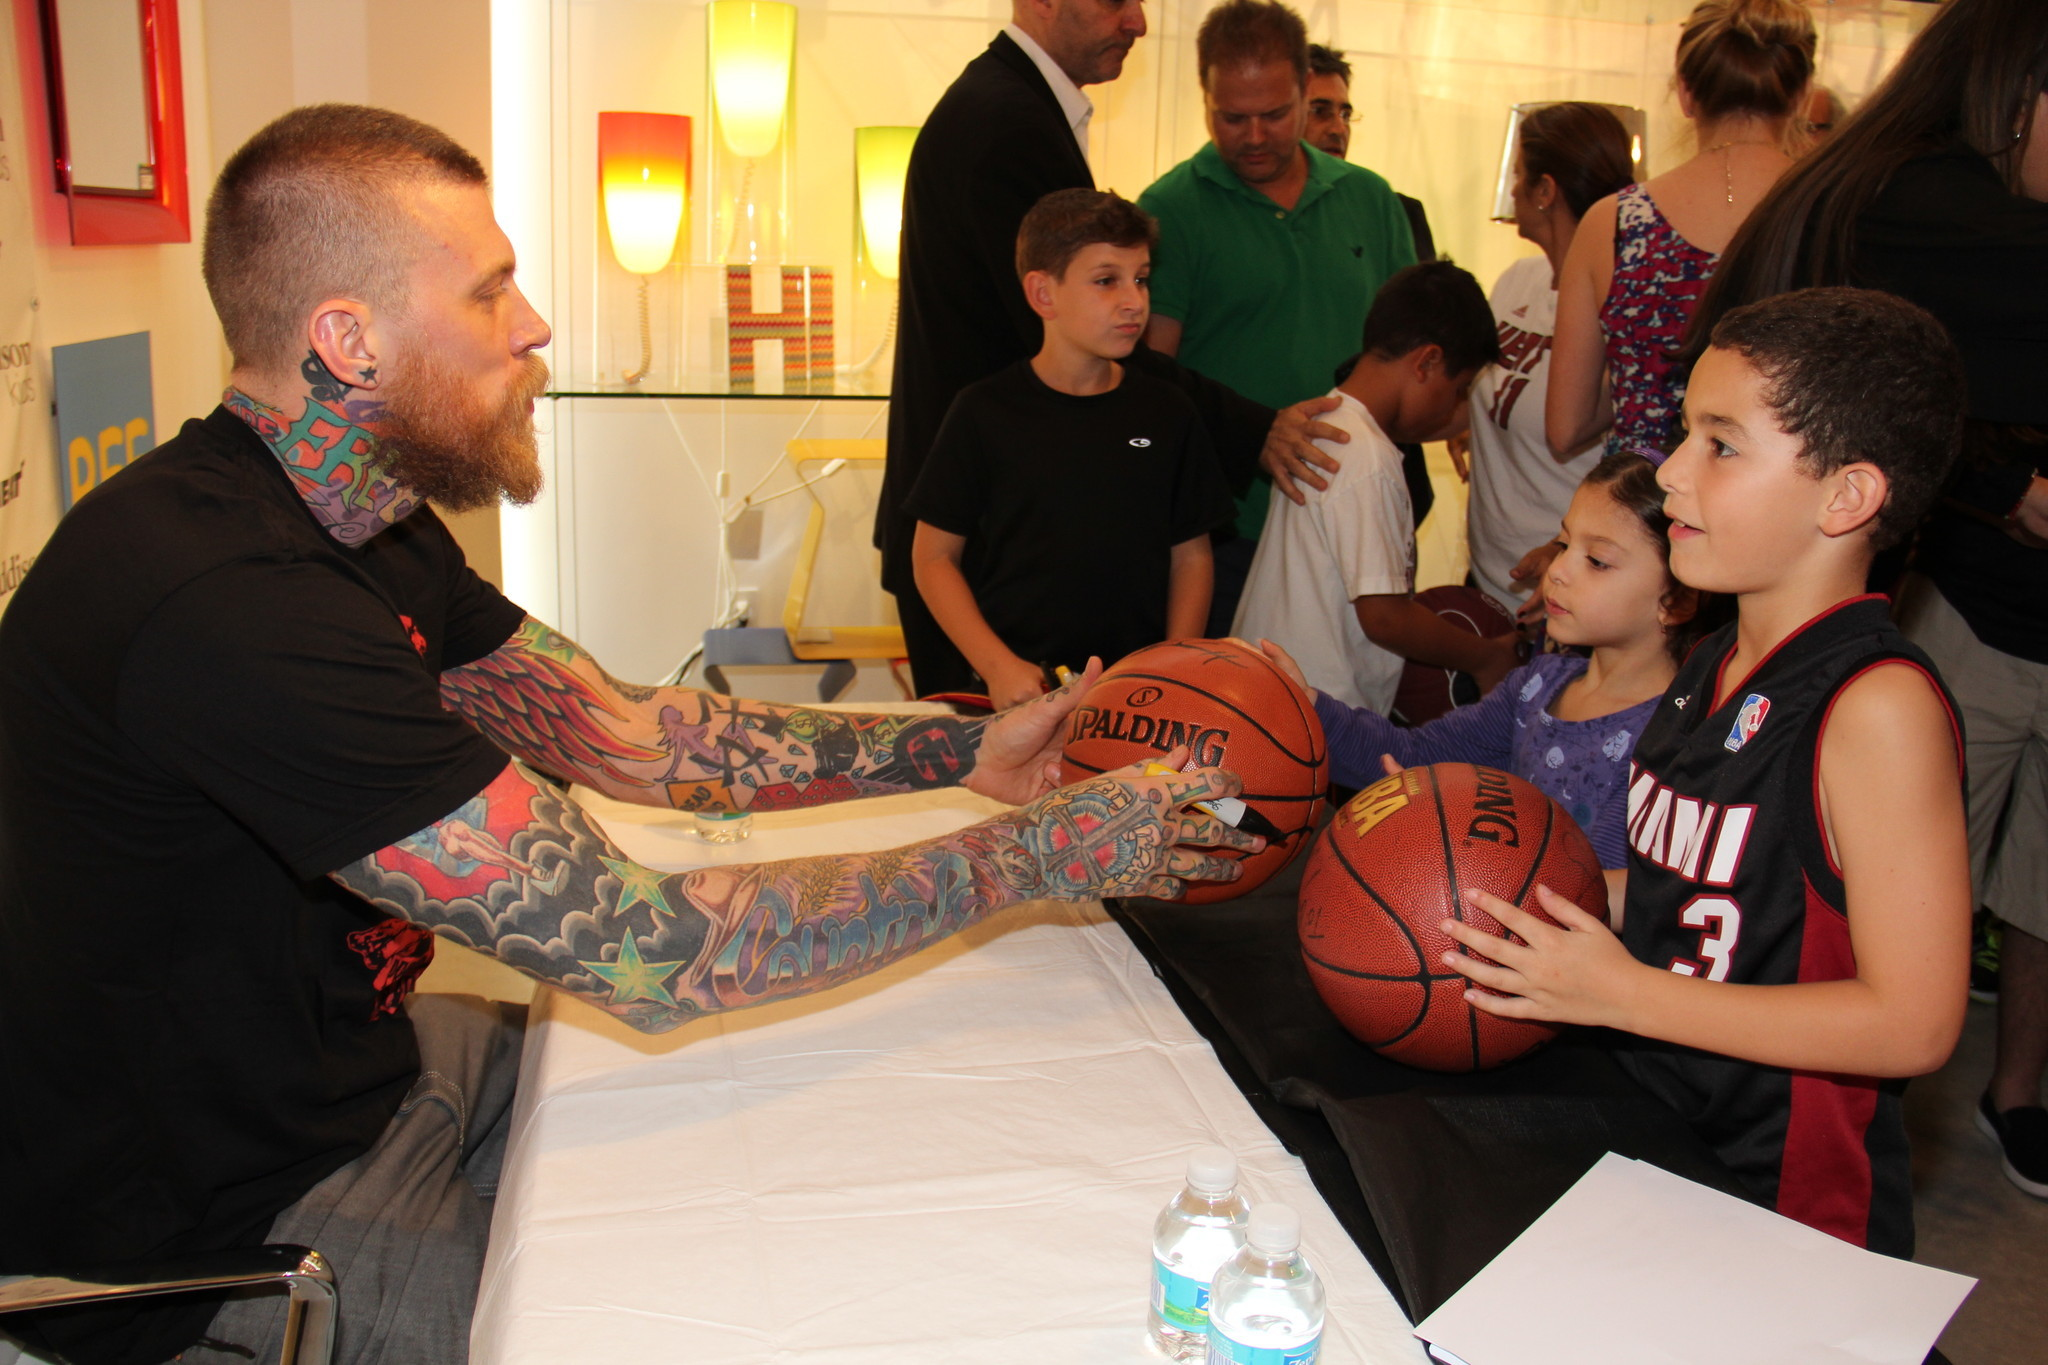 Celeb-spotting around South Florida - Chris Andersen, Alexandra Bentes and Andre Bentes